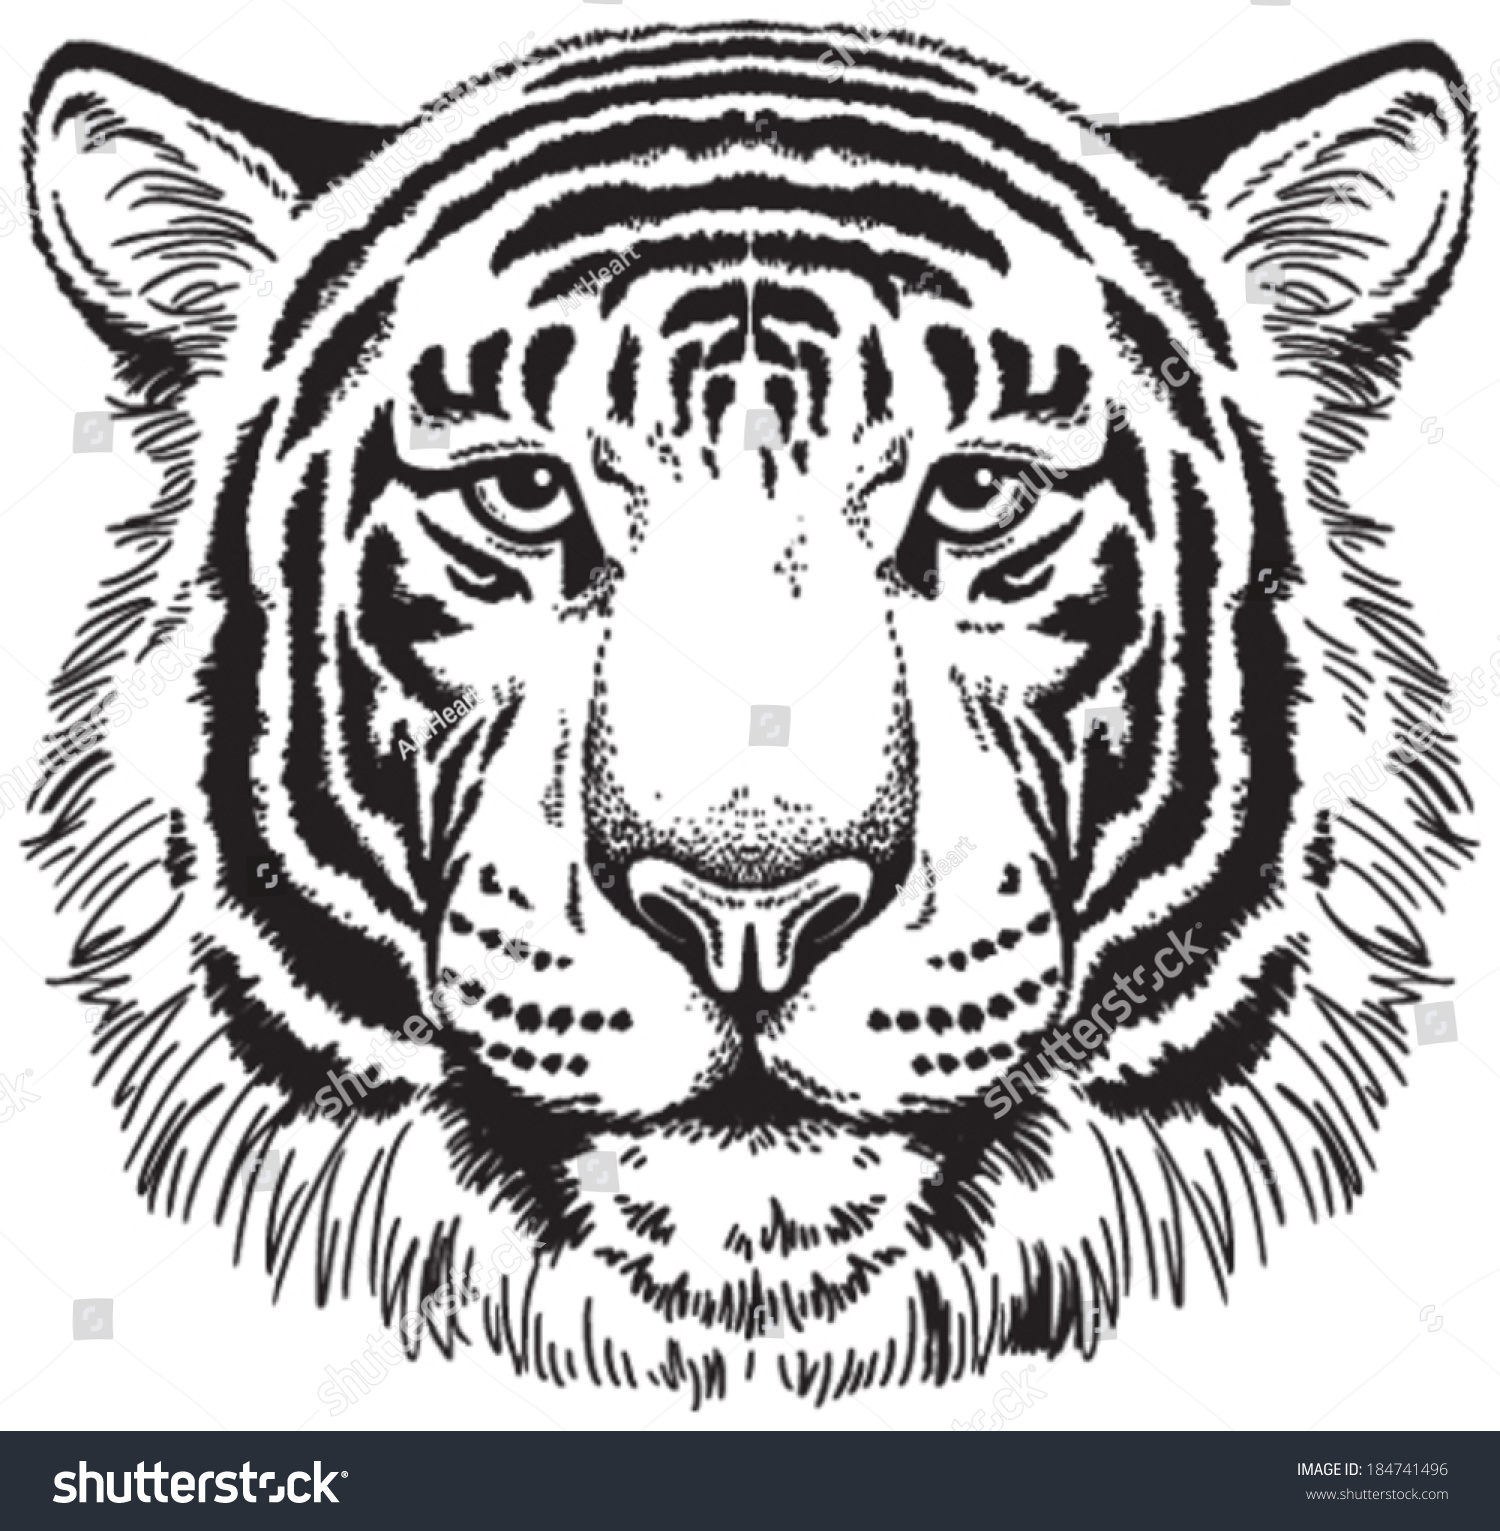 Tiger face clipart black and white transparent stock Tiger Face Clipart Black And White (98+ images in Collection ... transparent stock